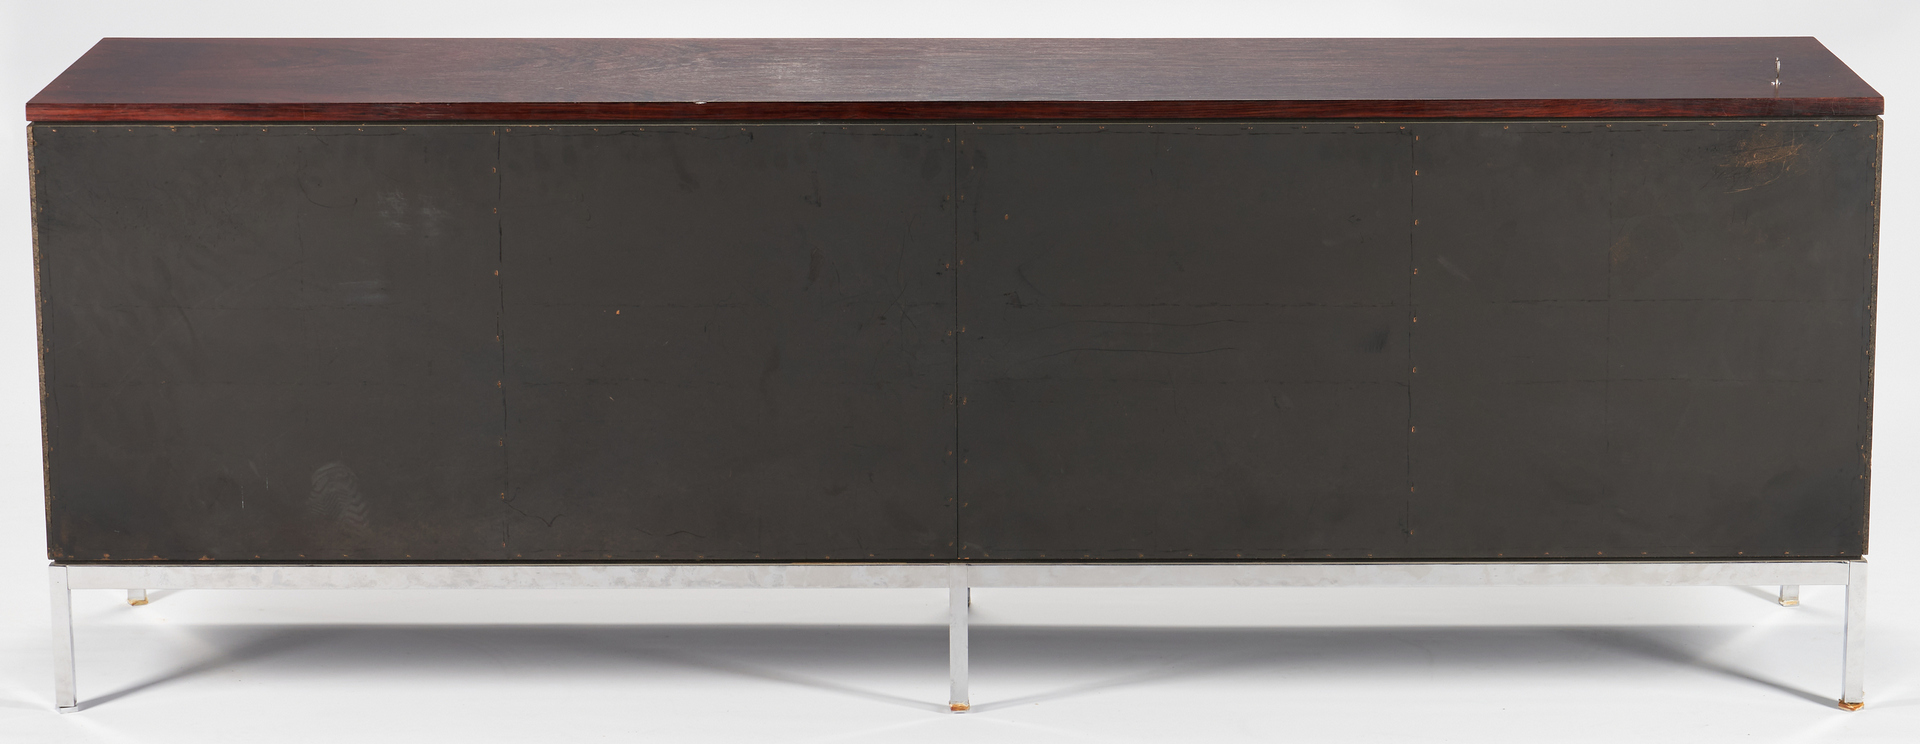 Lot 878: Knoll Rosewood Credenza or Sideboard, wood top